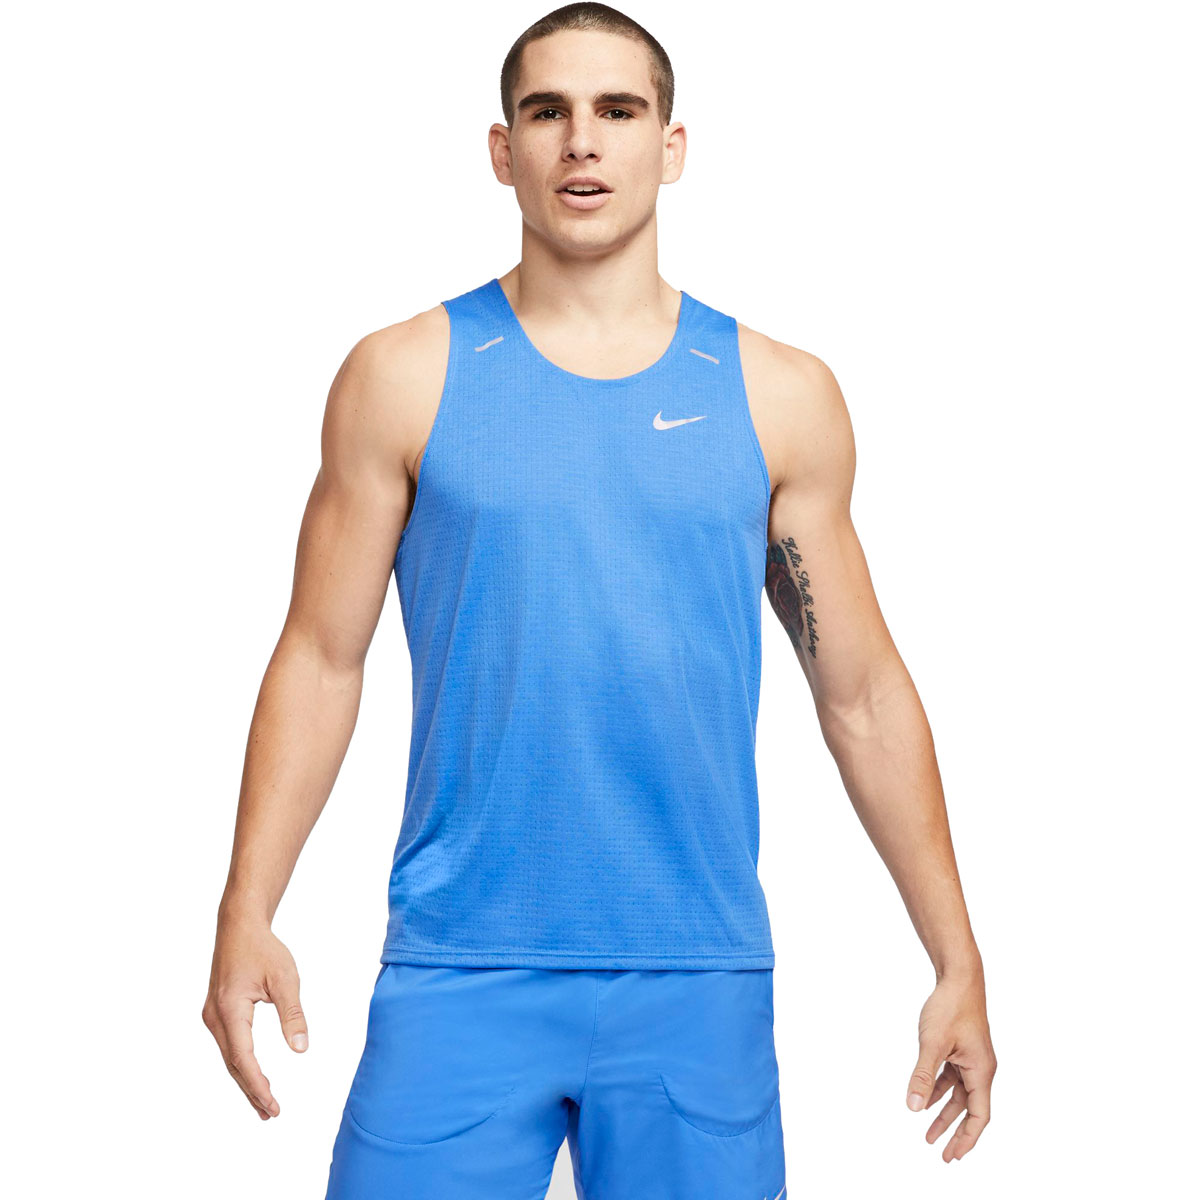 Men's Nike Rise 365 Running Tank - Color: Pacific Blue/Reflective Silver - Size: S, Pacific Blue/Reflective Silver, large, image 1